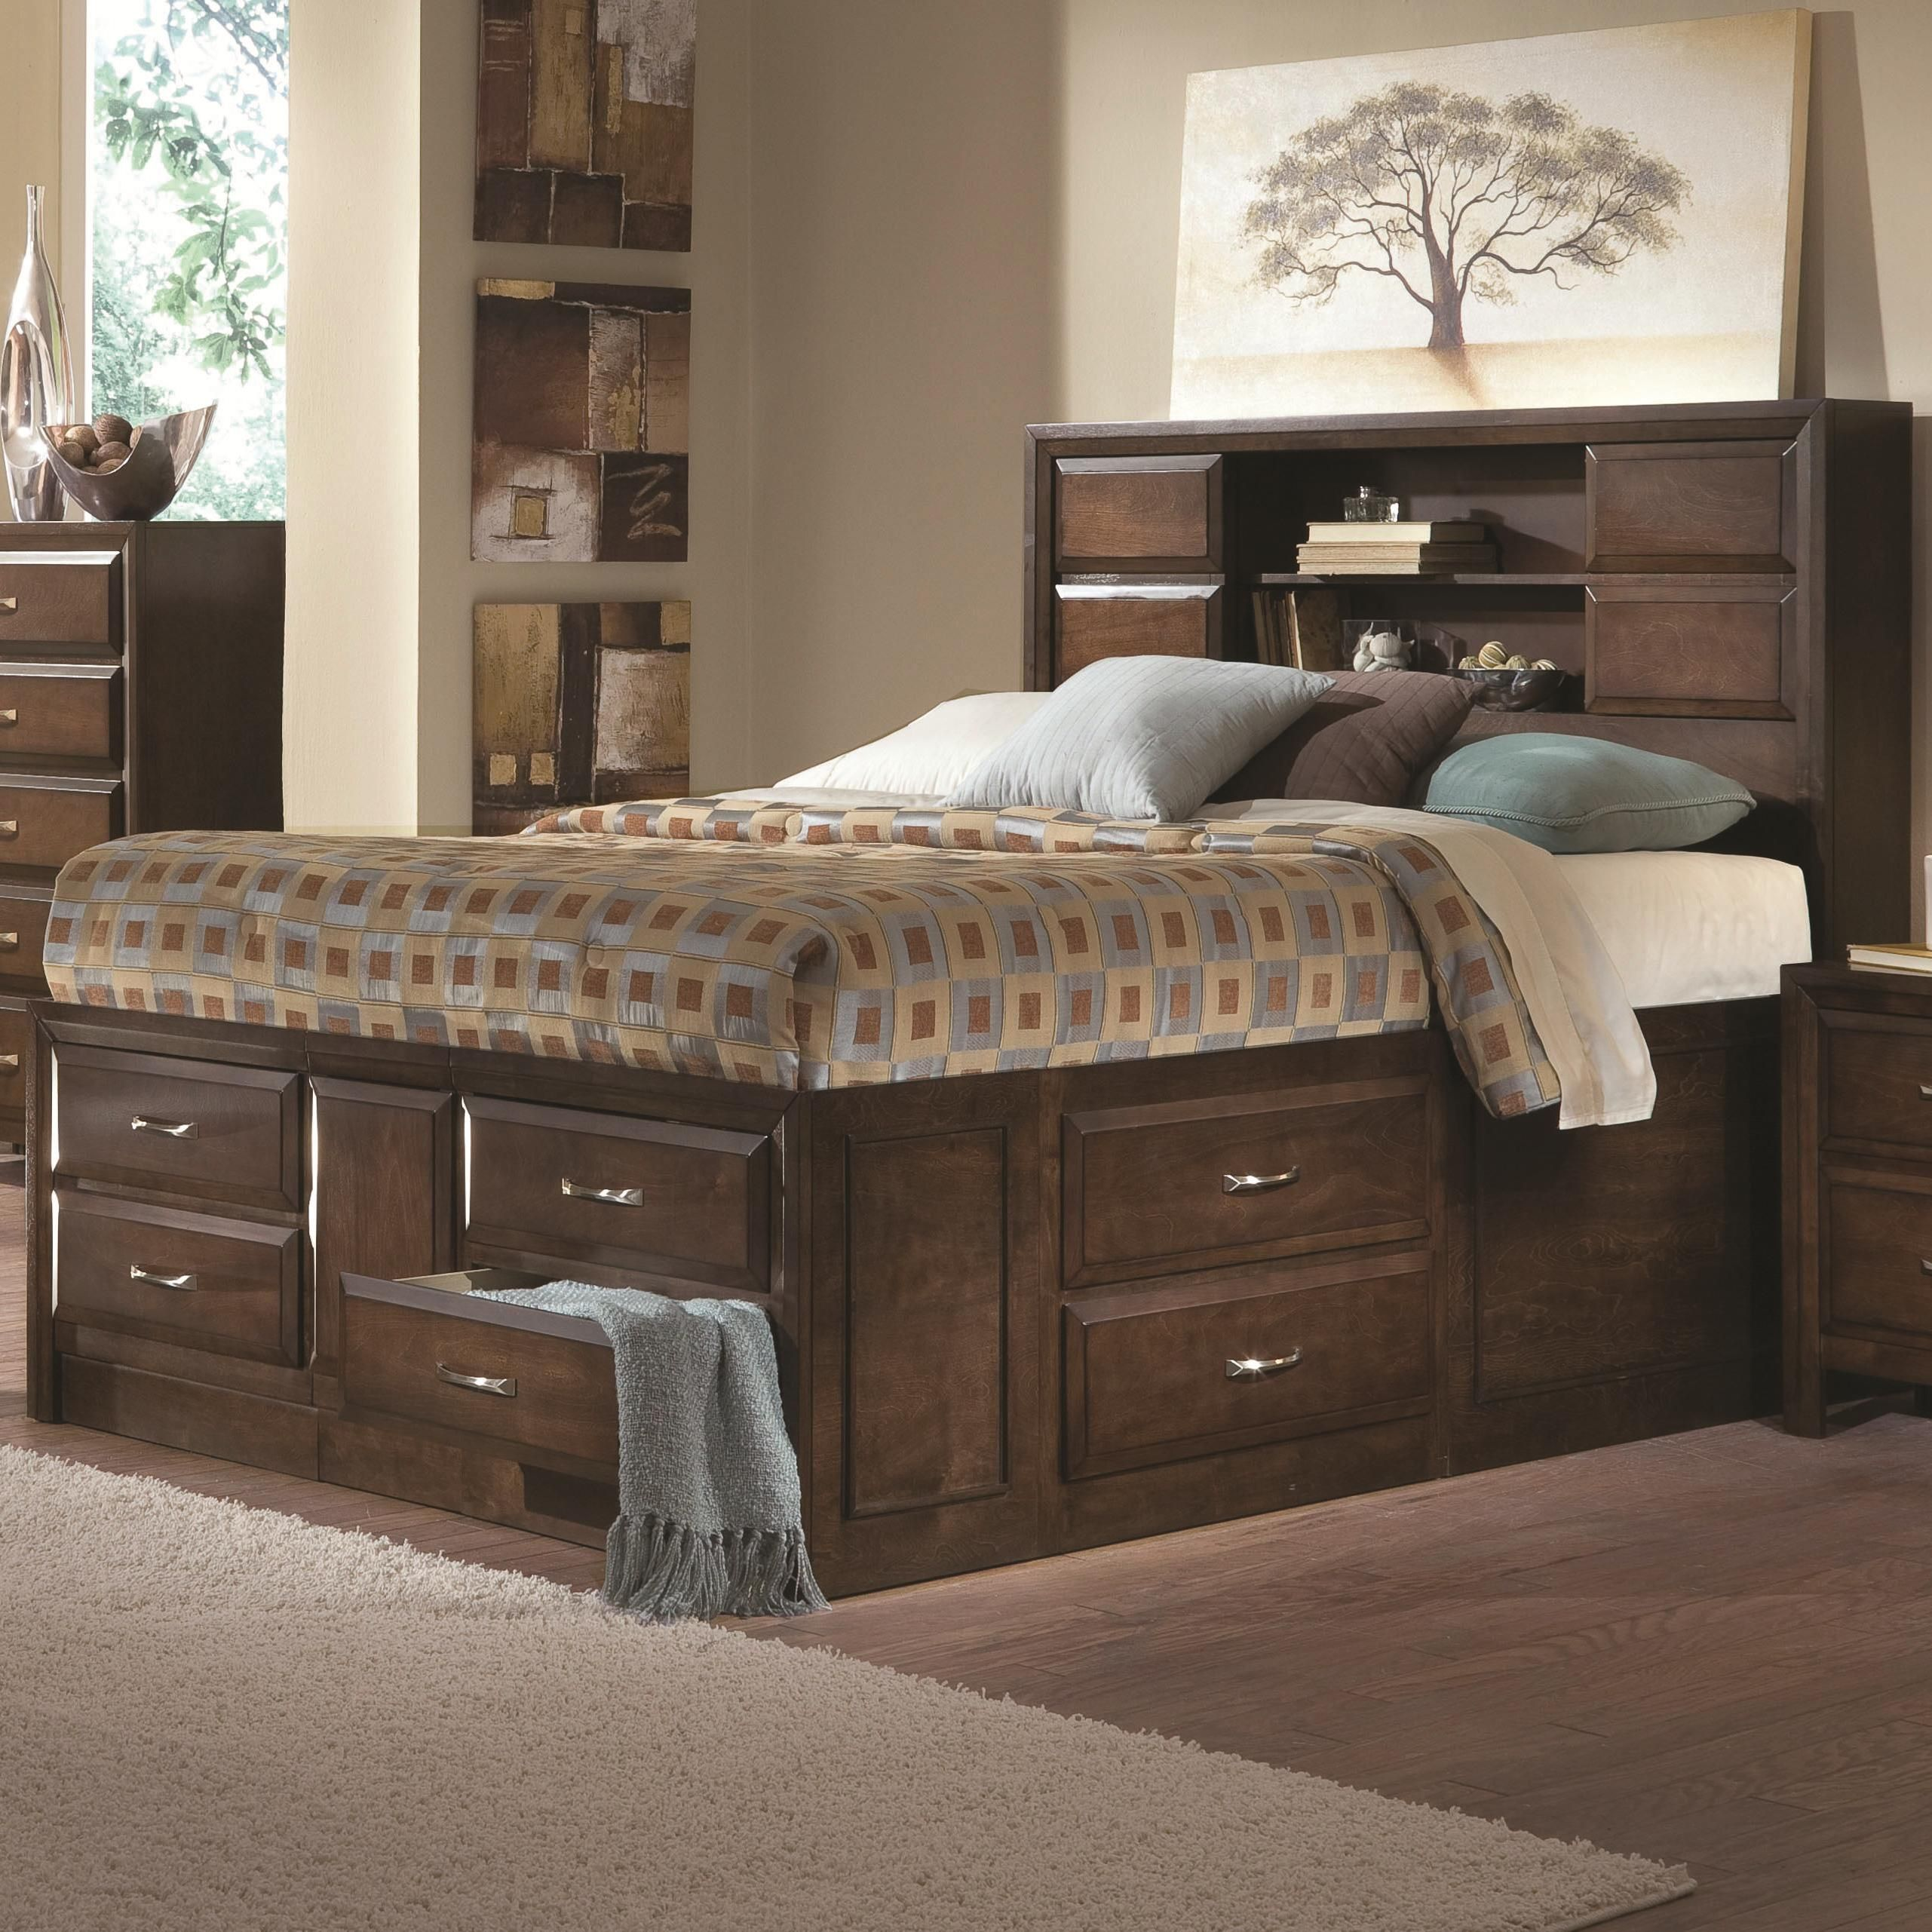 Northside King Platform Storage Bed By Generations By Coastergreat Idea